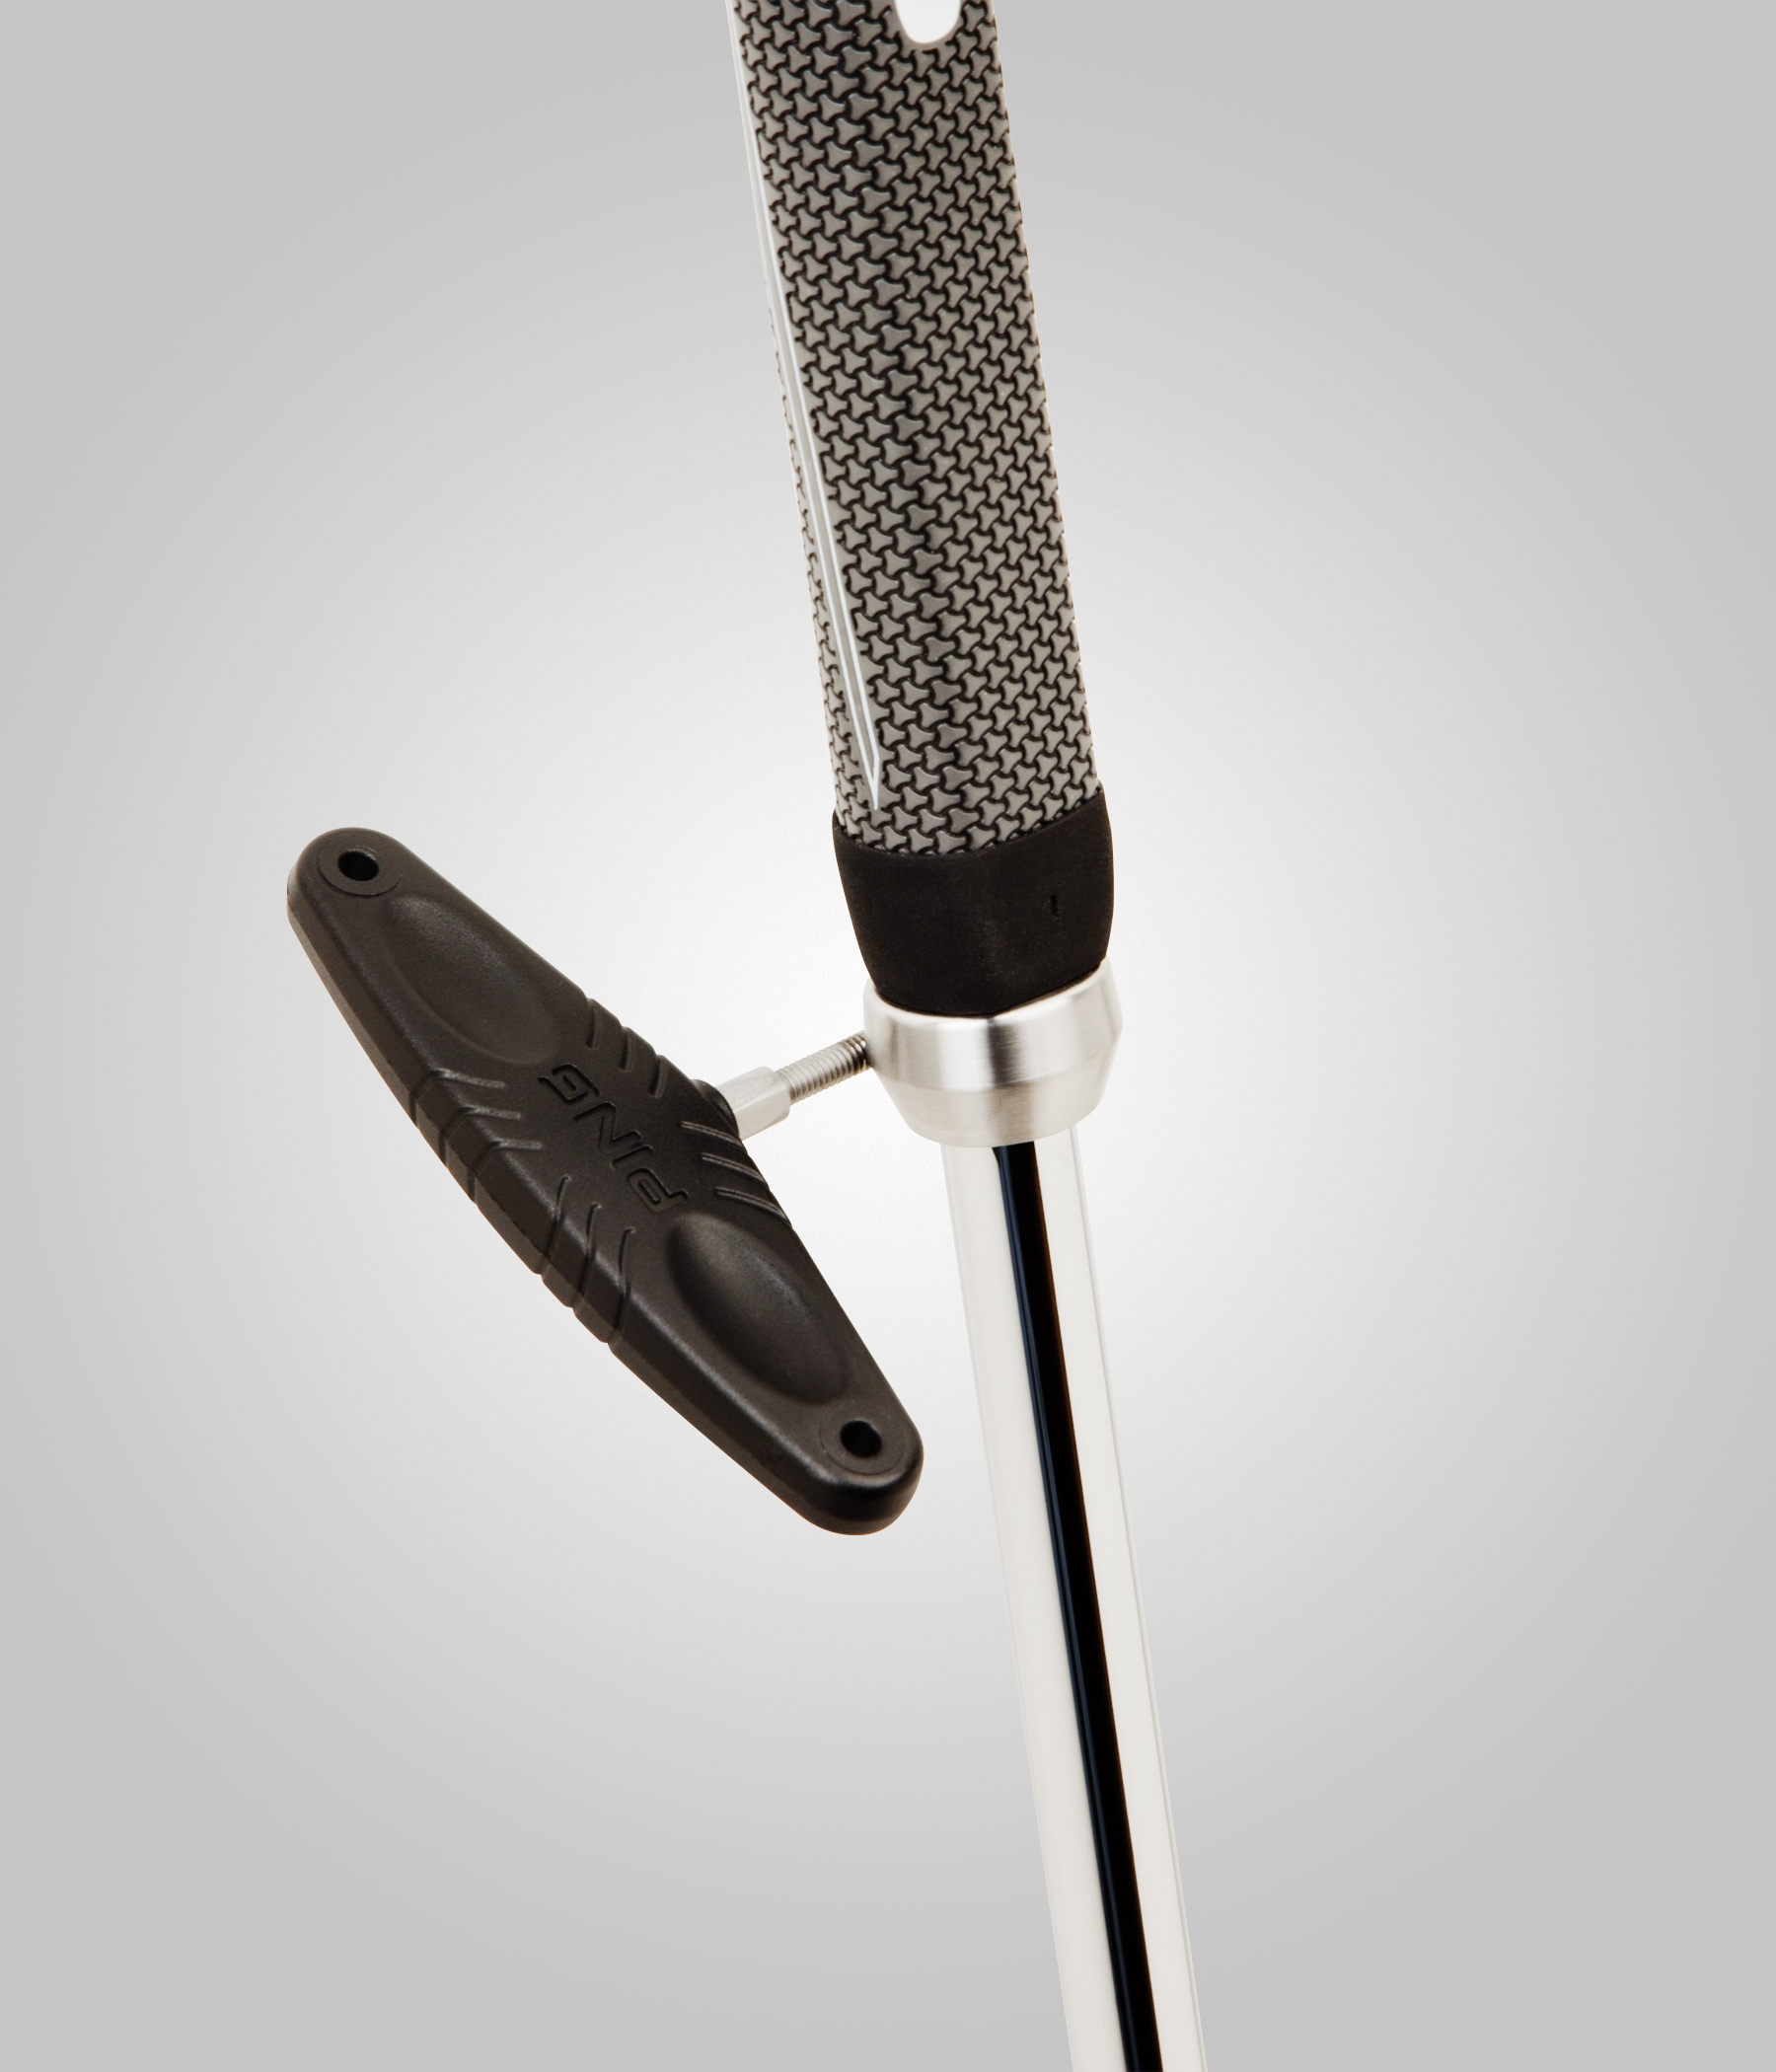 PING's adjustable putter shaft (above) is offered exclusively with the PING-405 (below)